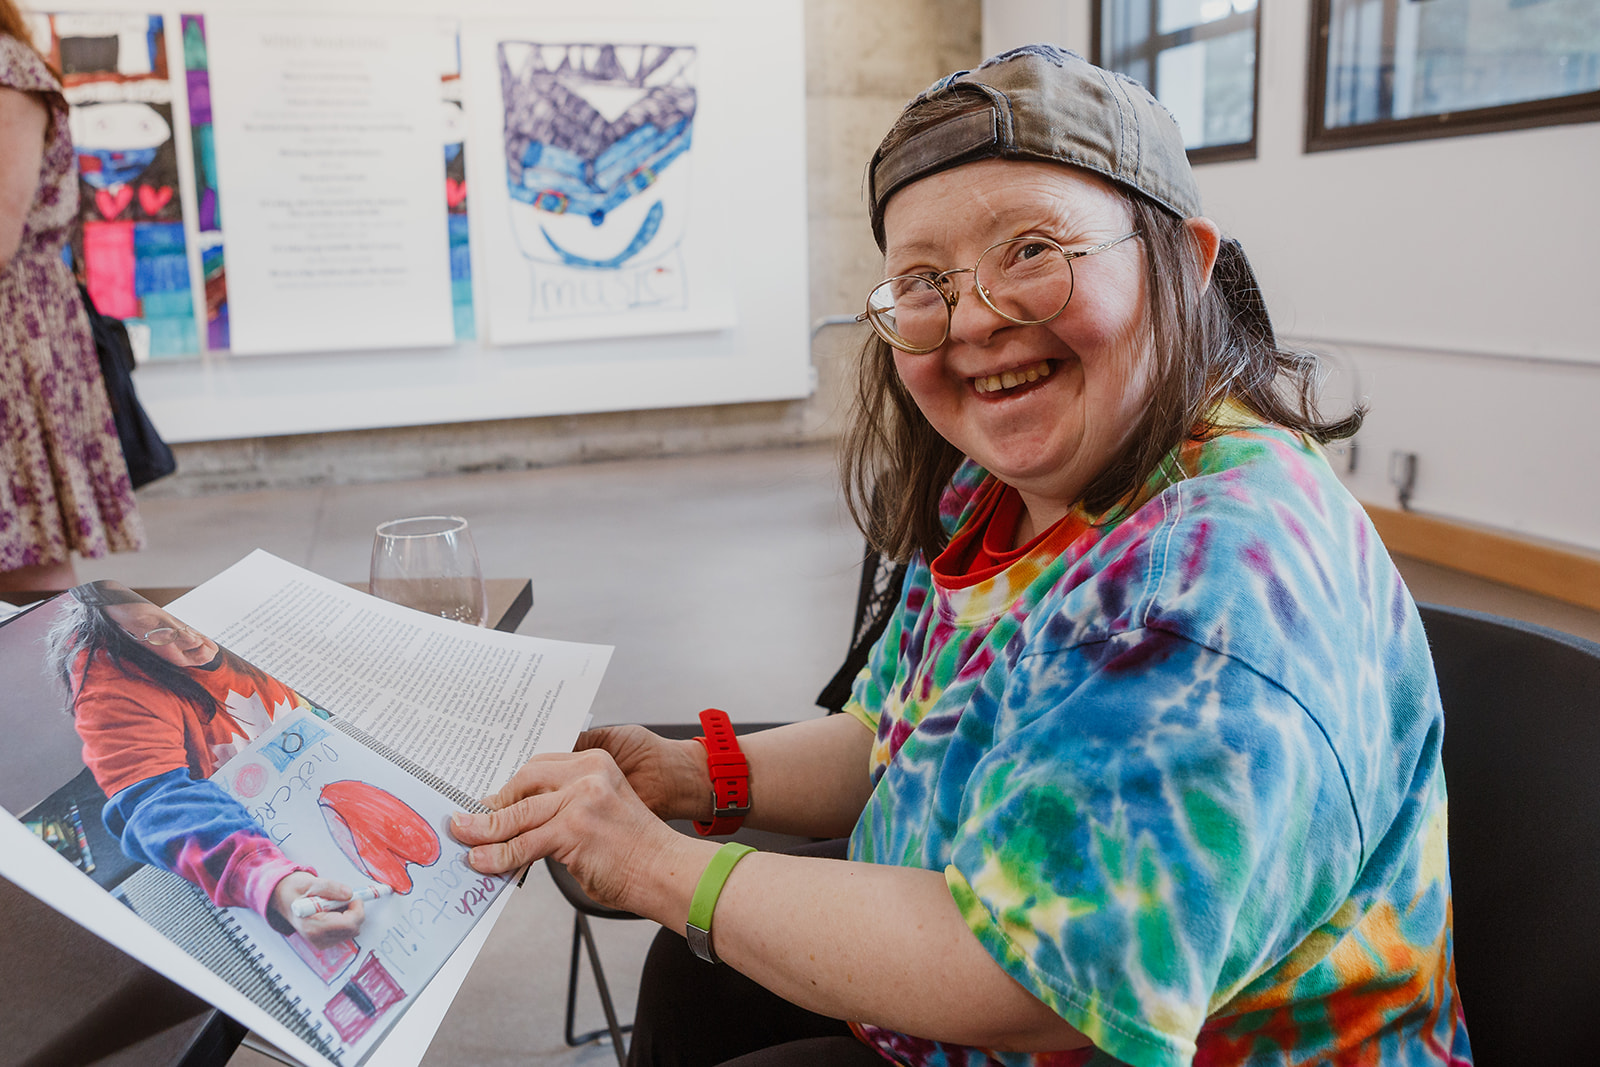 Teresa enjoys looking at her 'Totally Amazing: Free To Be Me' on July 22, 2019. Photo: This Is It Studios.